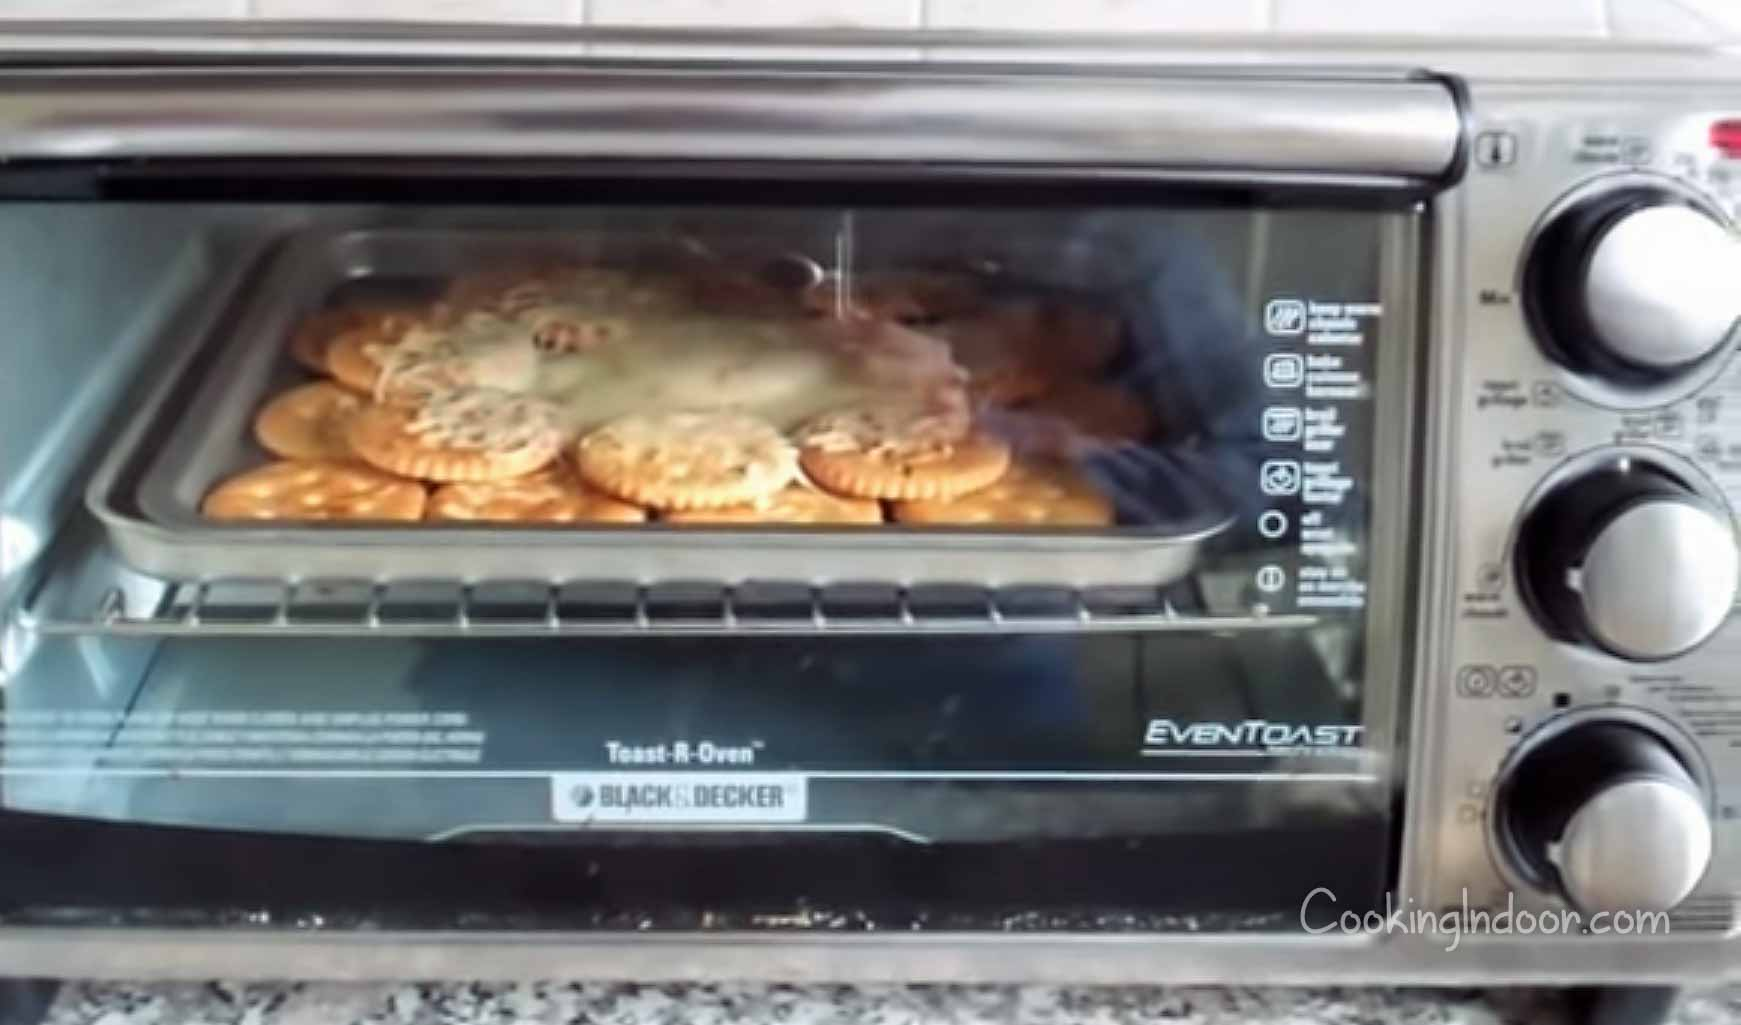 Best Black and Decker toaster oven